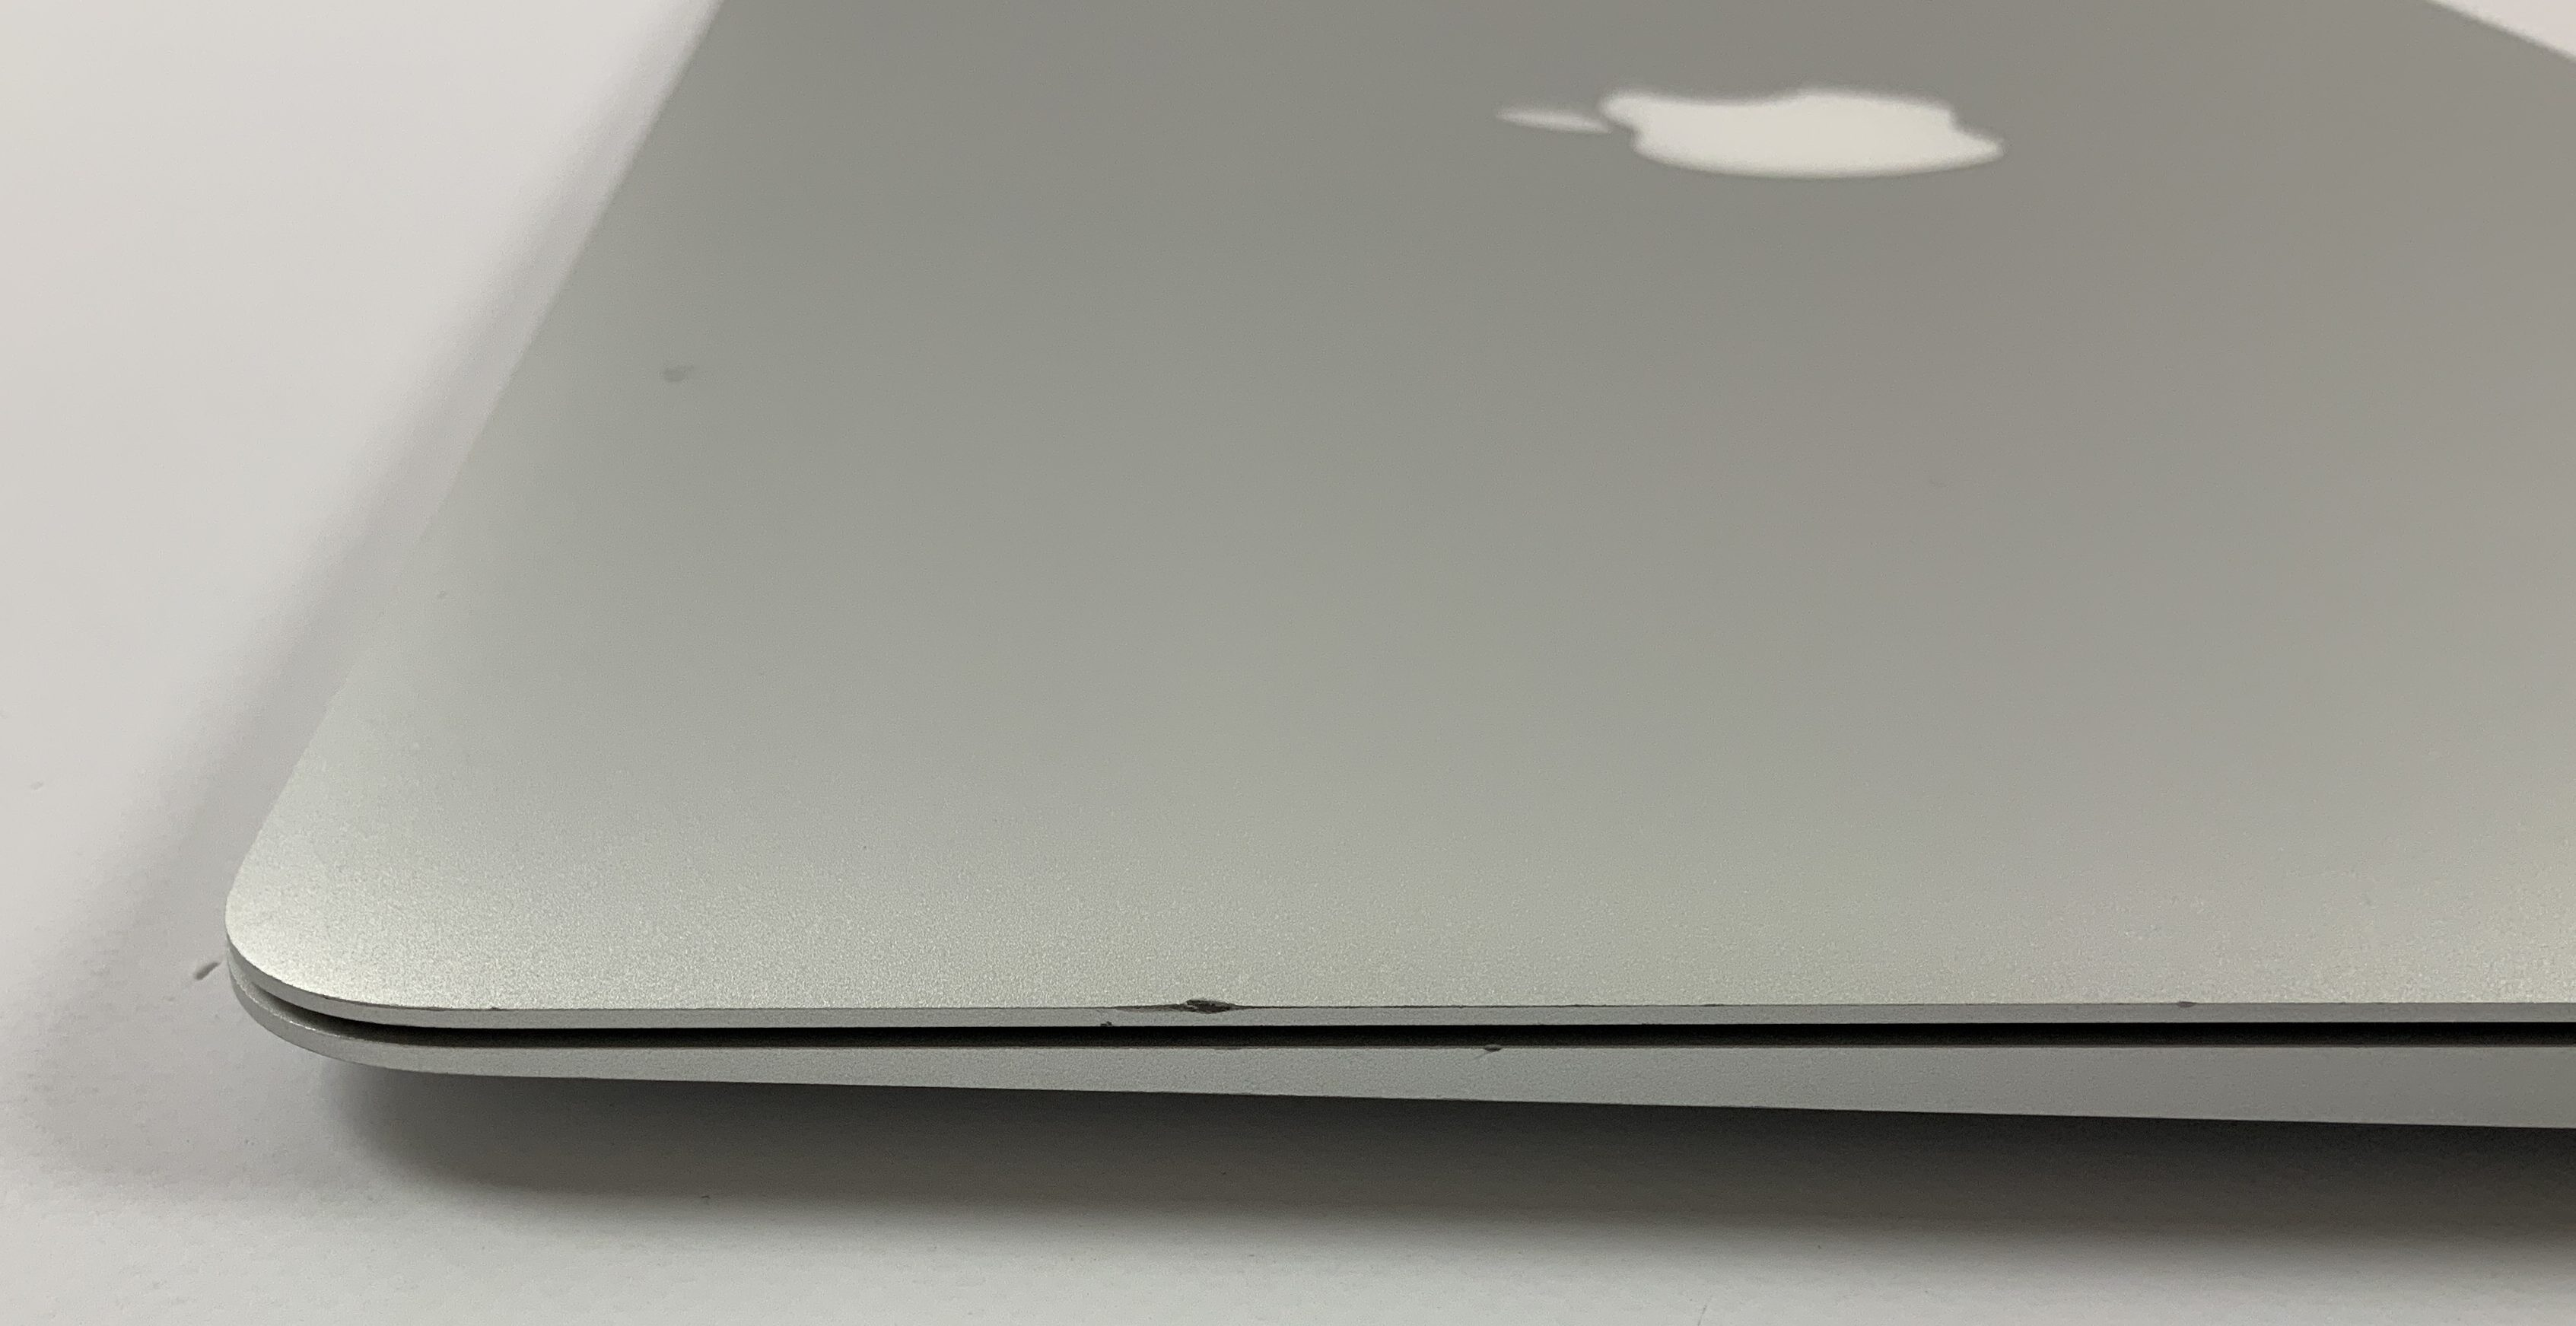 "MacBook Air 13"" Early 2015 (Intel Core i5 1.6 GHz 8 GB RAM 256 GB SSD), Intel Core i5 1.6 GHz, 8 GB RAM, 256 GB SSD, Kuva 3"